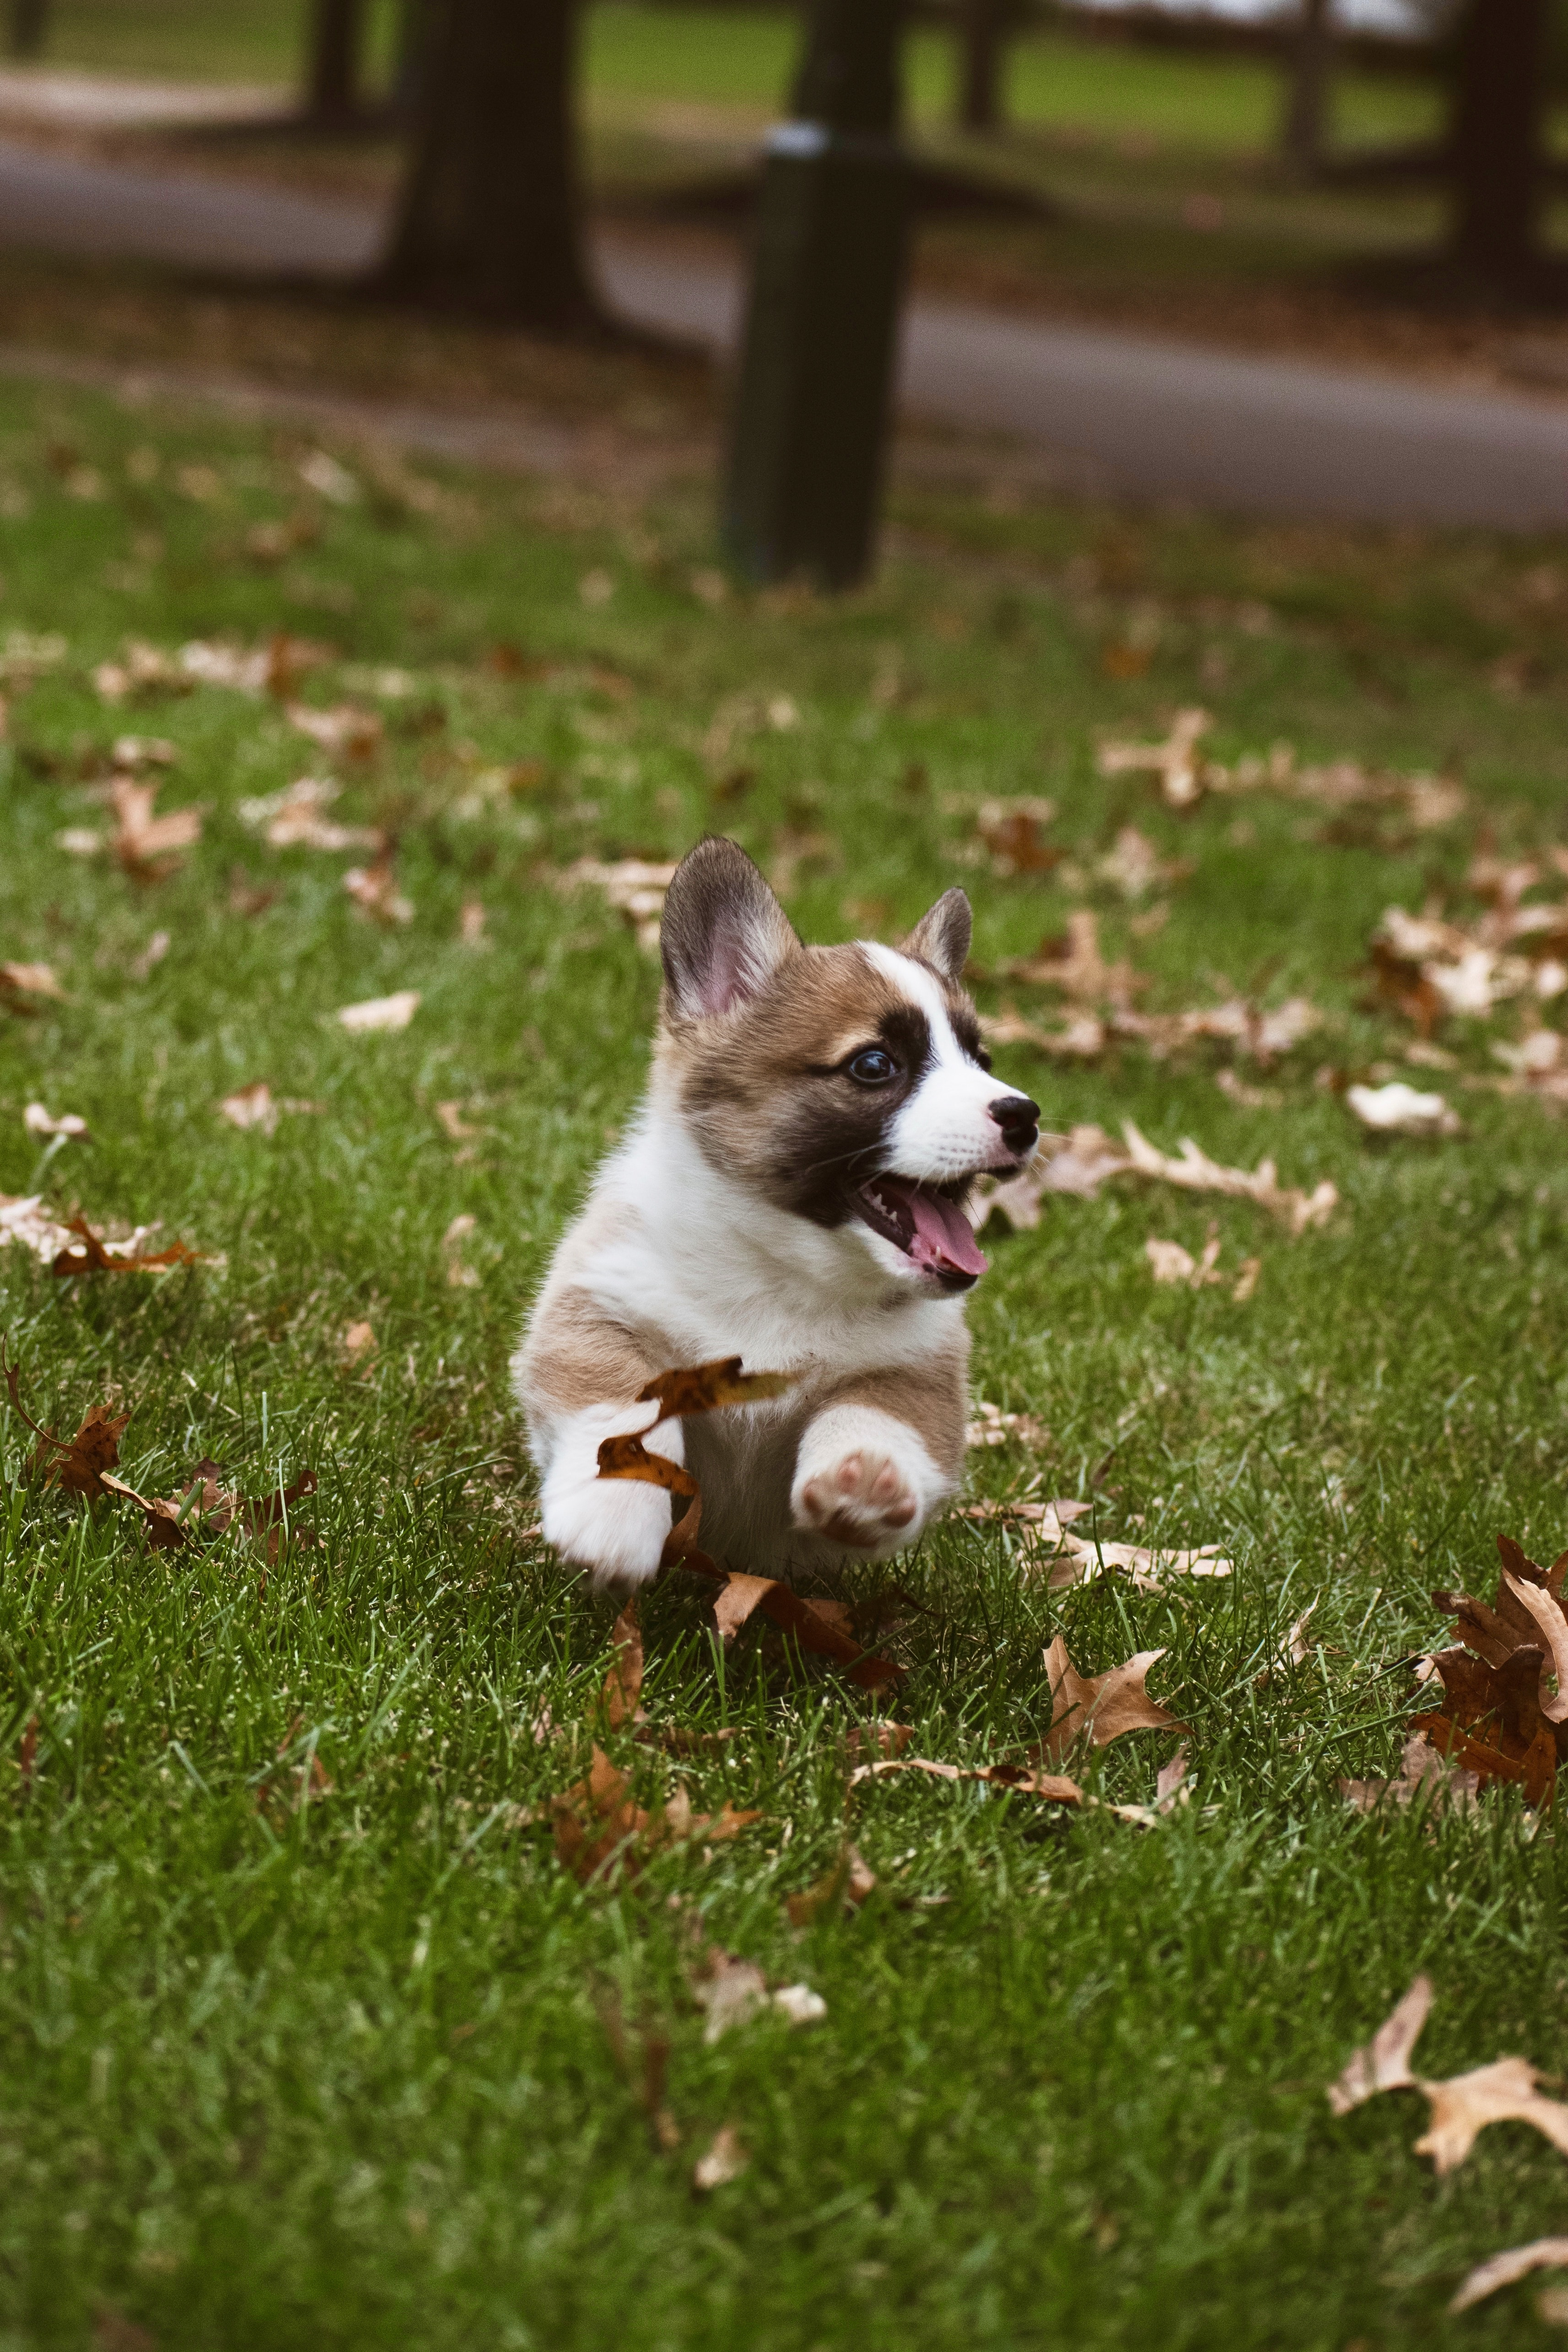 82190 download wallpaper Funny, Animals, Dog, Corgi screensavers and pictures for free